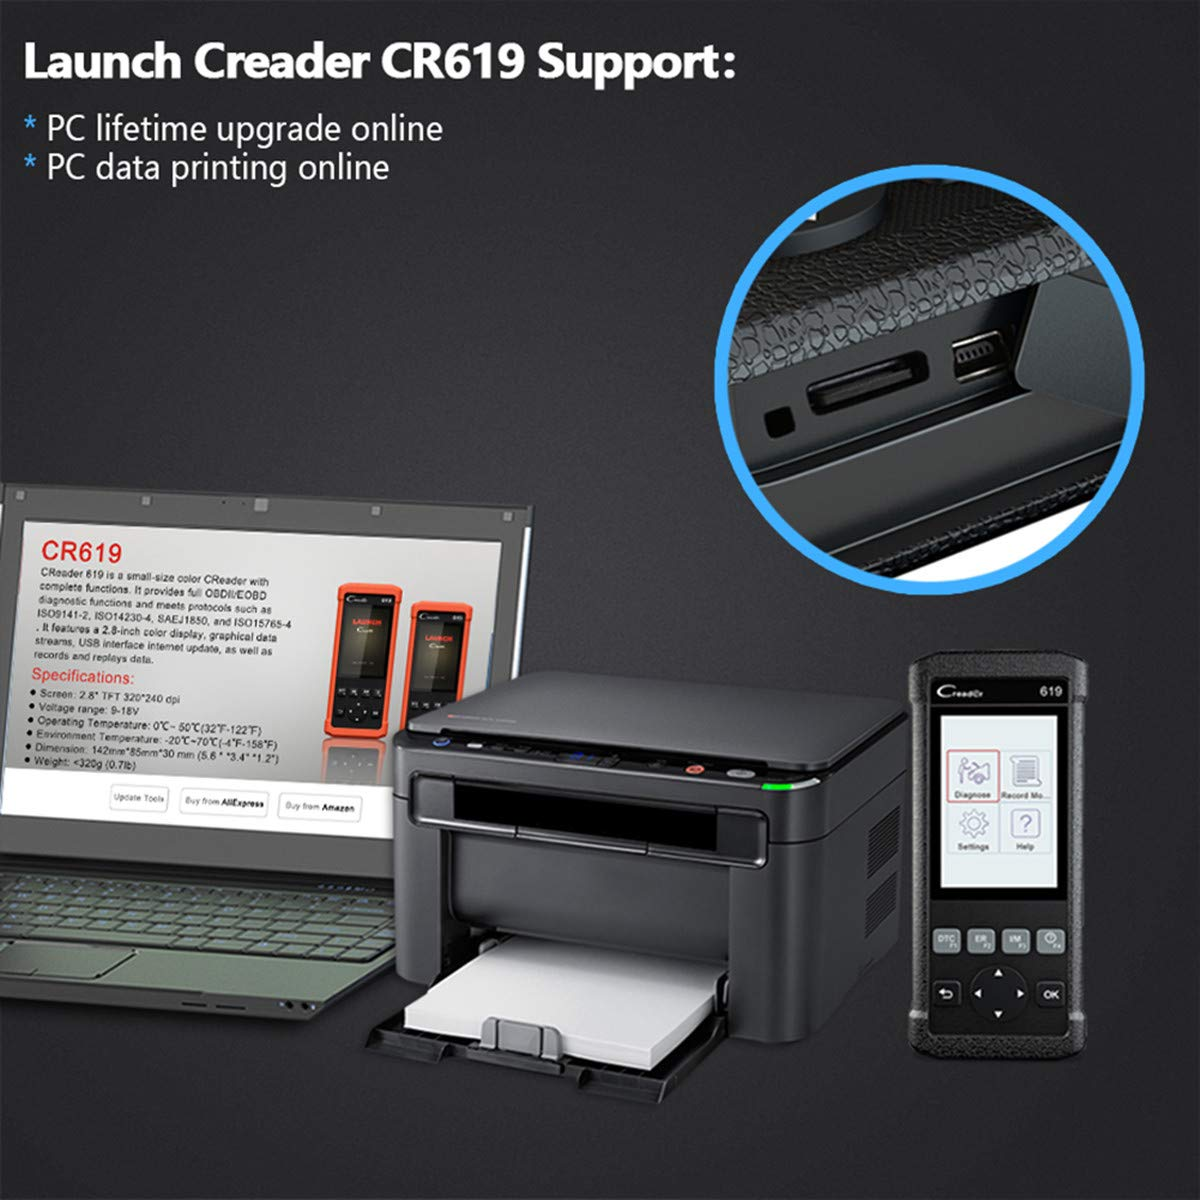 LAUNCH Creader CR619 Automotive ABS SRS Obd2 OBD ii Scanner Check Car Engine ABS Airbag Light Fault Code Readers Auto Dignostic Scan Tool with EVAP O2 On-Board Test by LAUNCH (Image #7)